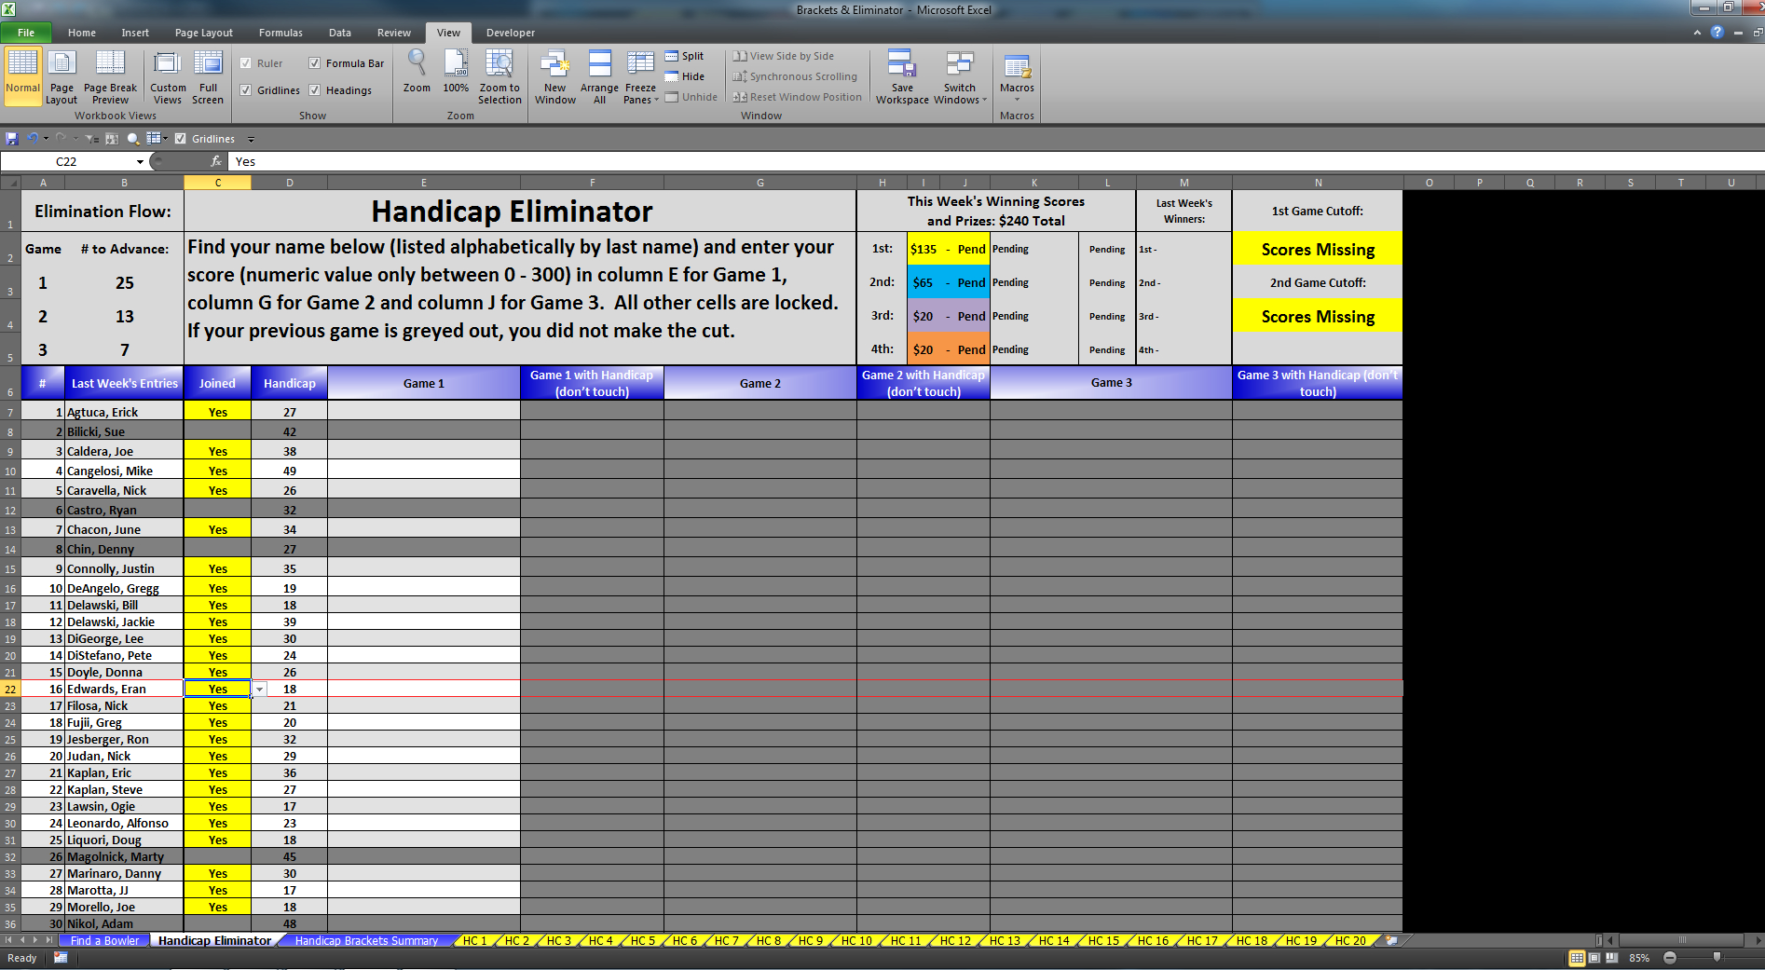 Bowling Prize Fund Spreadsheet With Eliminator  Bracket Excel Software For Sale!  For Sale/wanted